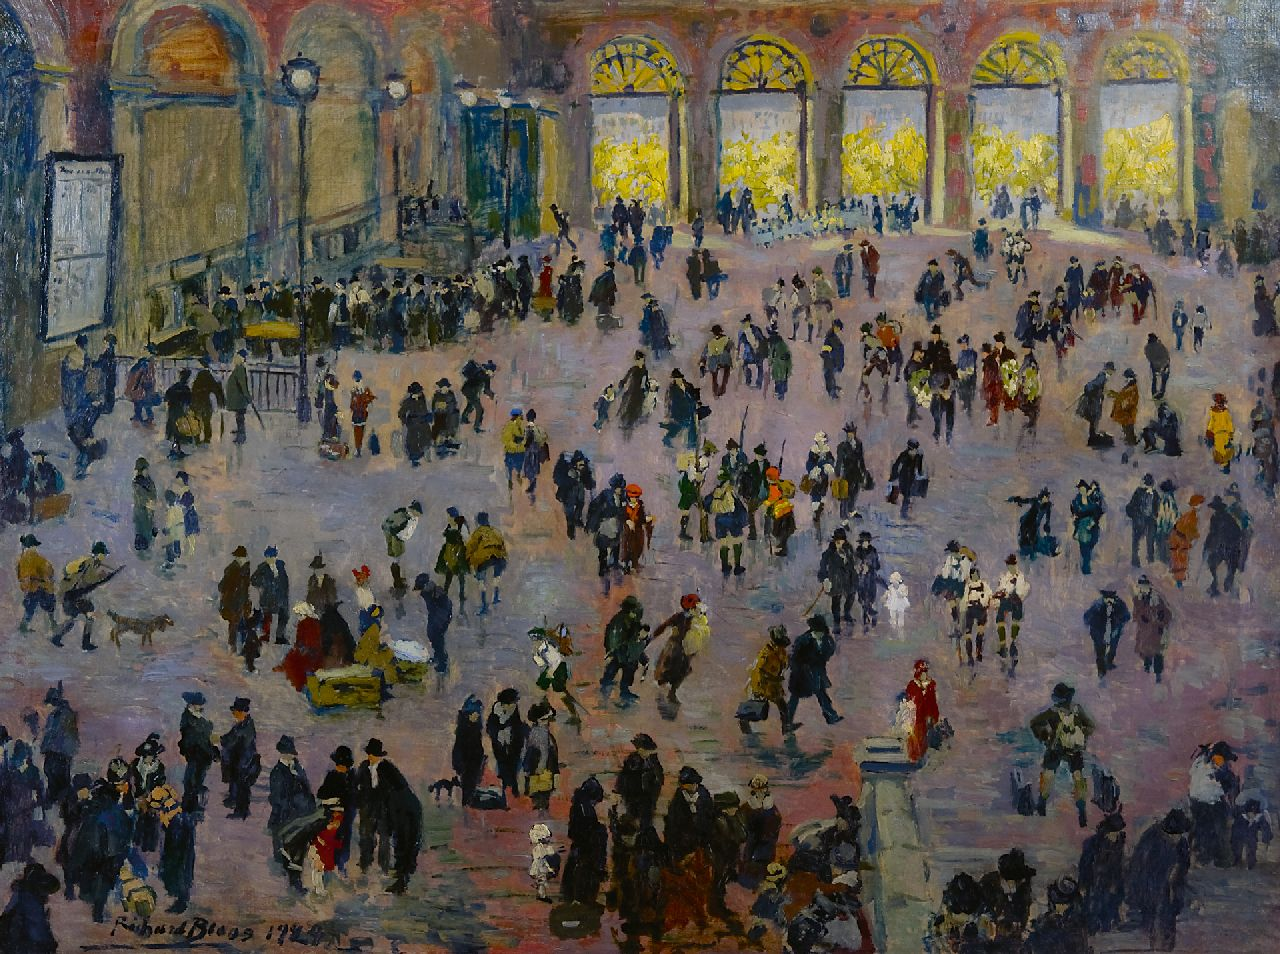 Bloos R.W.  | 'Richard' Willi Bloos | Paintings offered for sale | Rush hour in the 'Südbahnhof', Vienna, oil on canvas 90.3 x 118.2 cm, signed l.l. and dated 1929